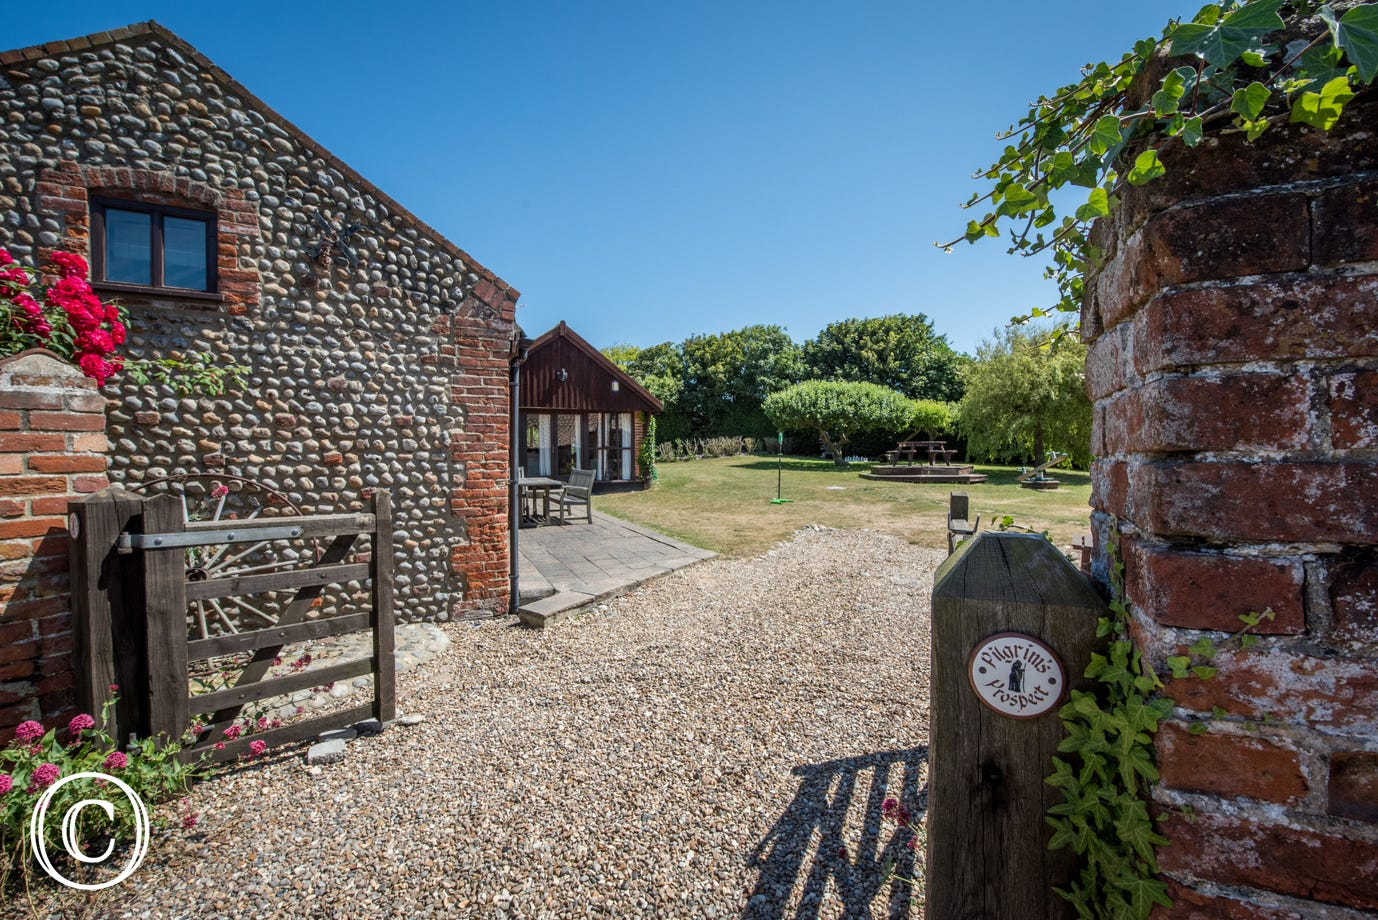 Each cottage has its own private area with table, chairs and gas barbecue, ideal for al fresco dining. There is also shared use of the extensive gardens with a summerhouse, outdoor chess set and swingball